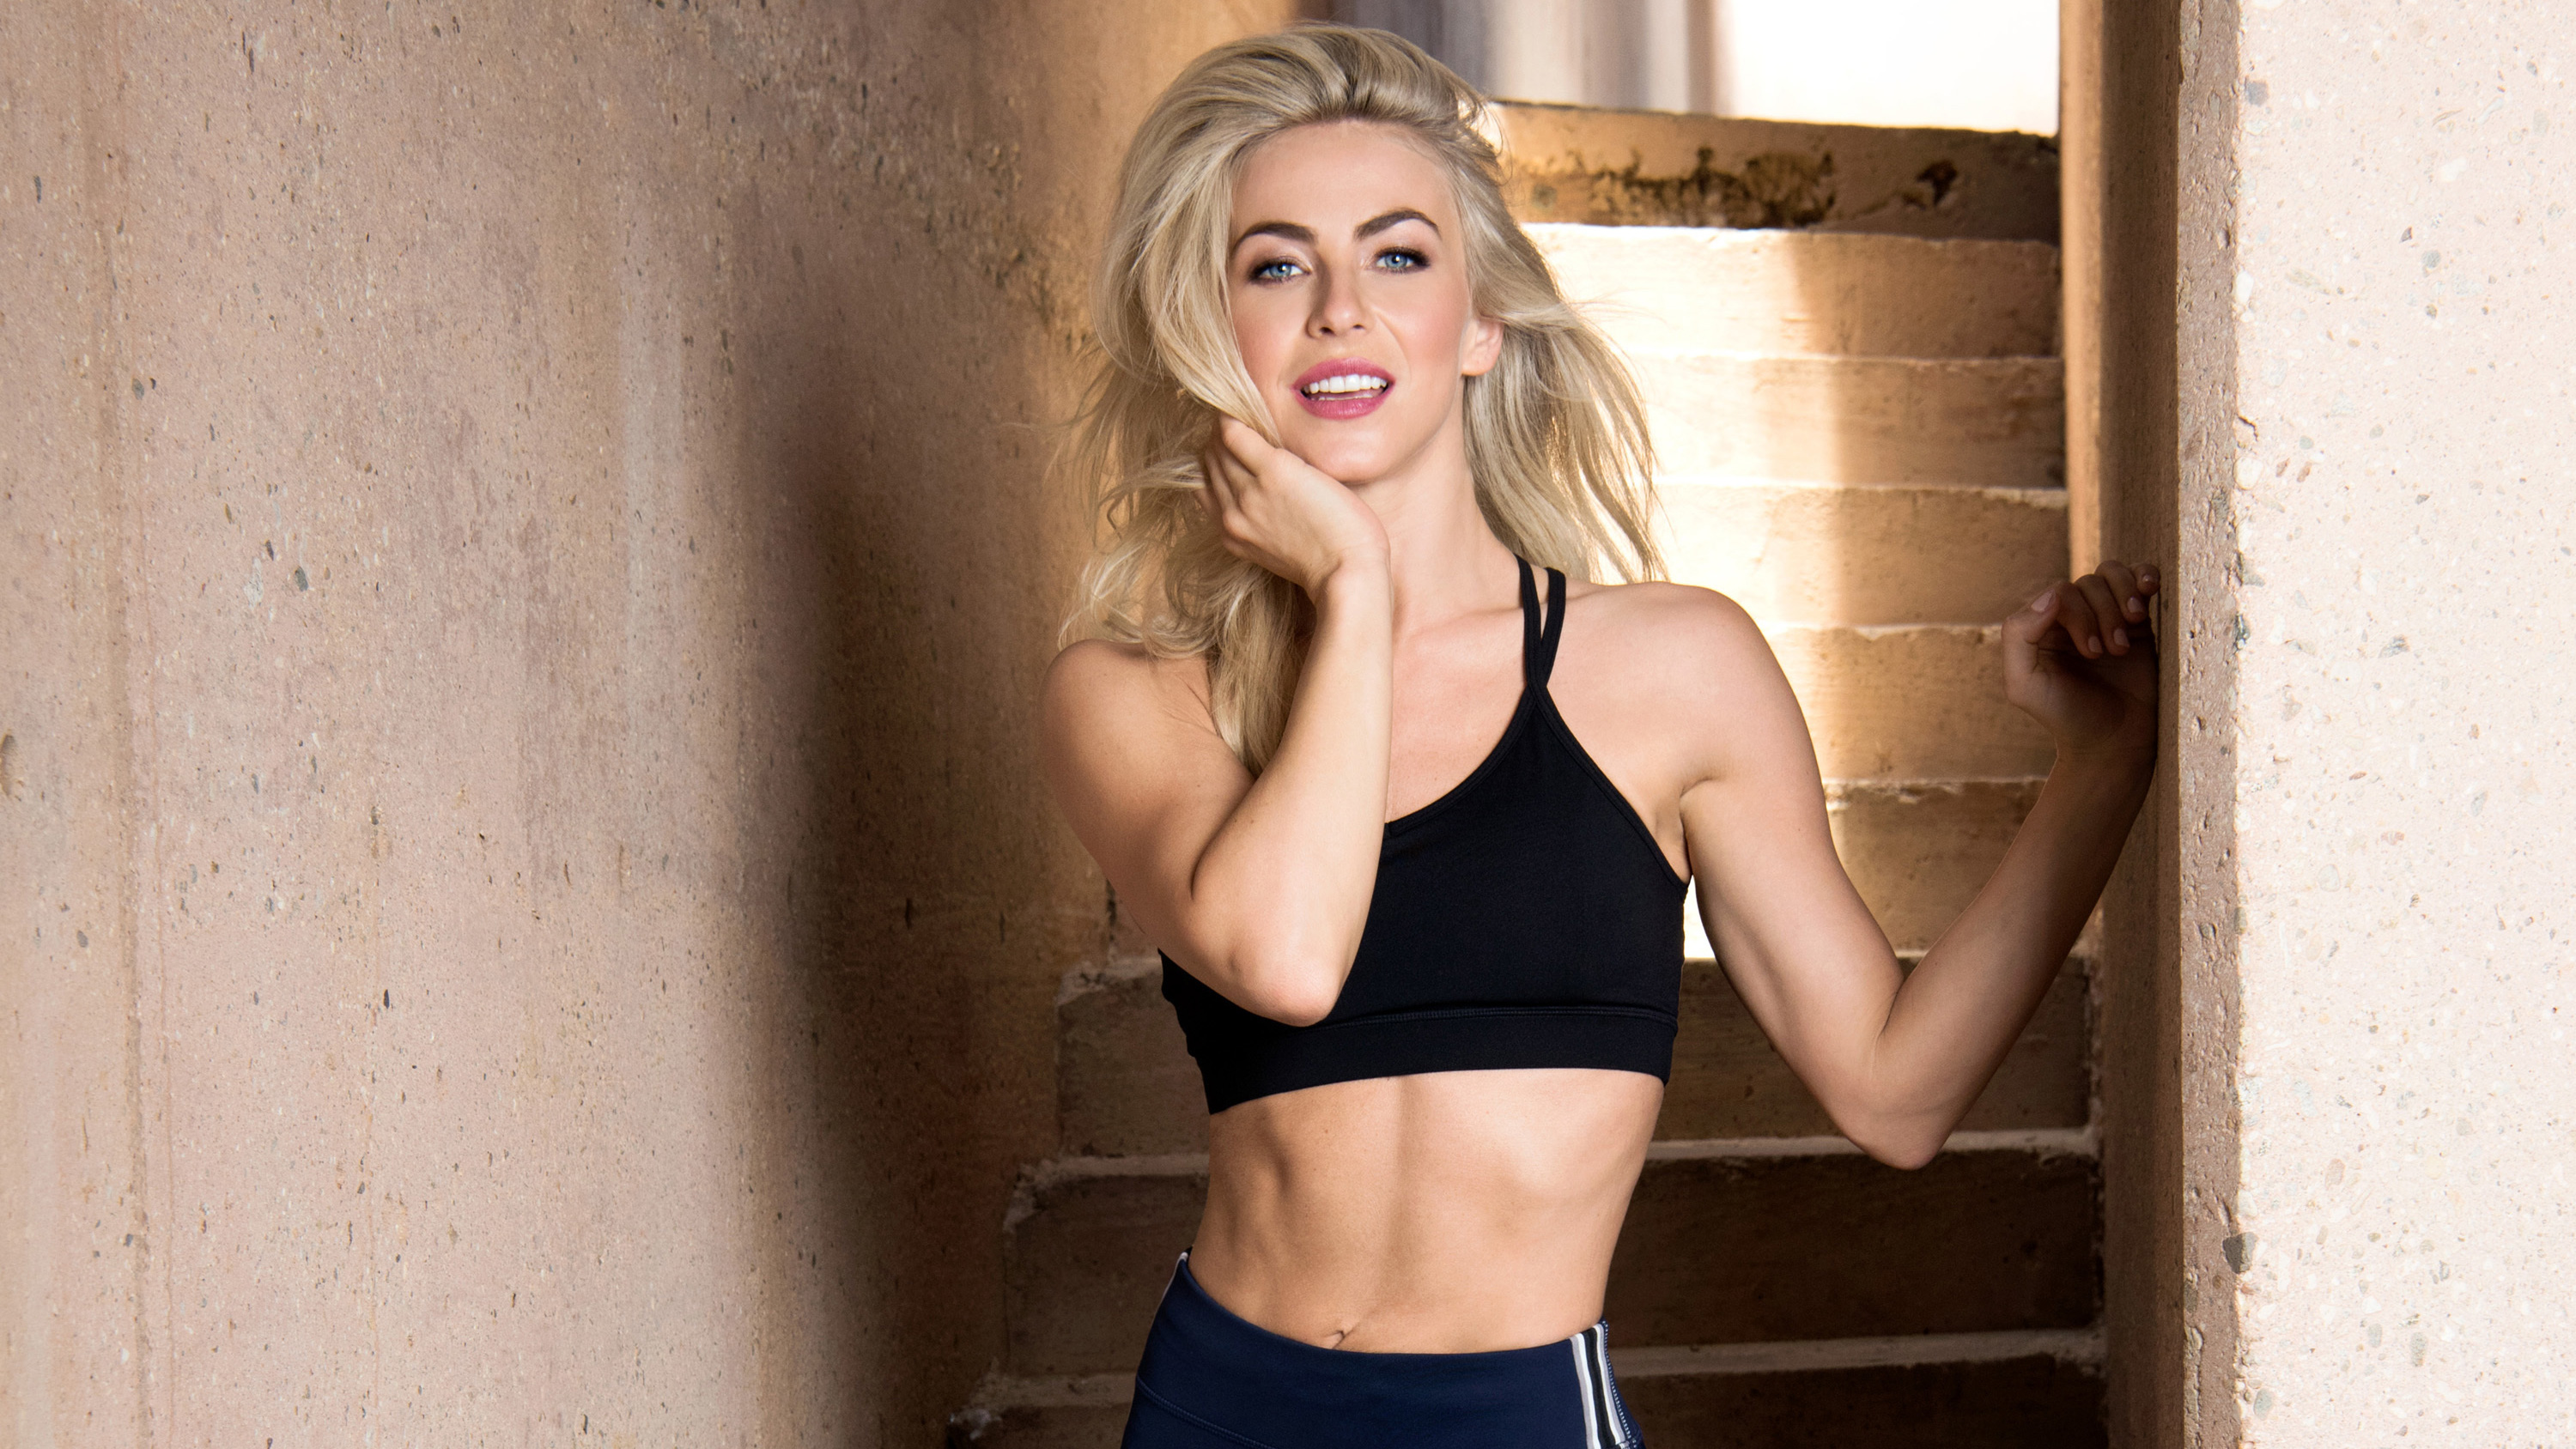 #julianne Hough, #celebrities, #girls, #actress, #hd - Many Sisters Does Derek Hough Have , HD Wallpaper & Backgrounds